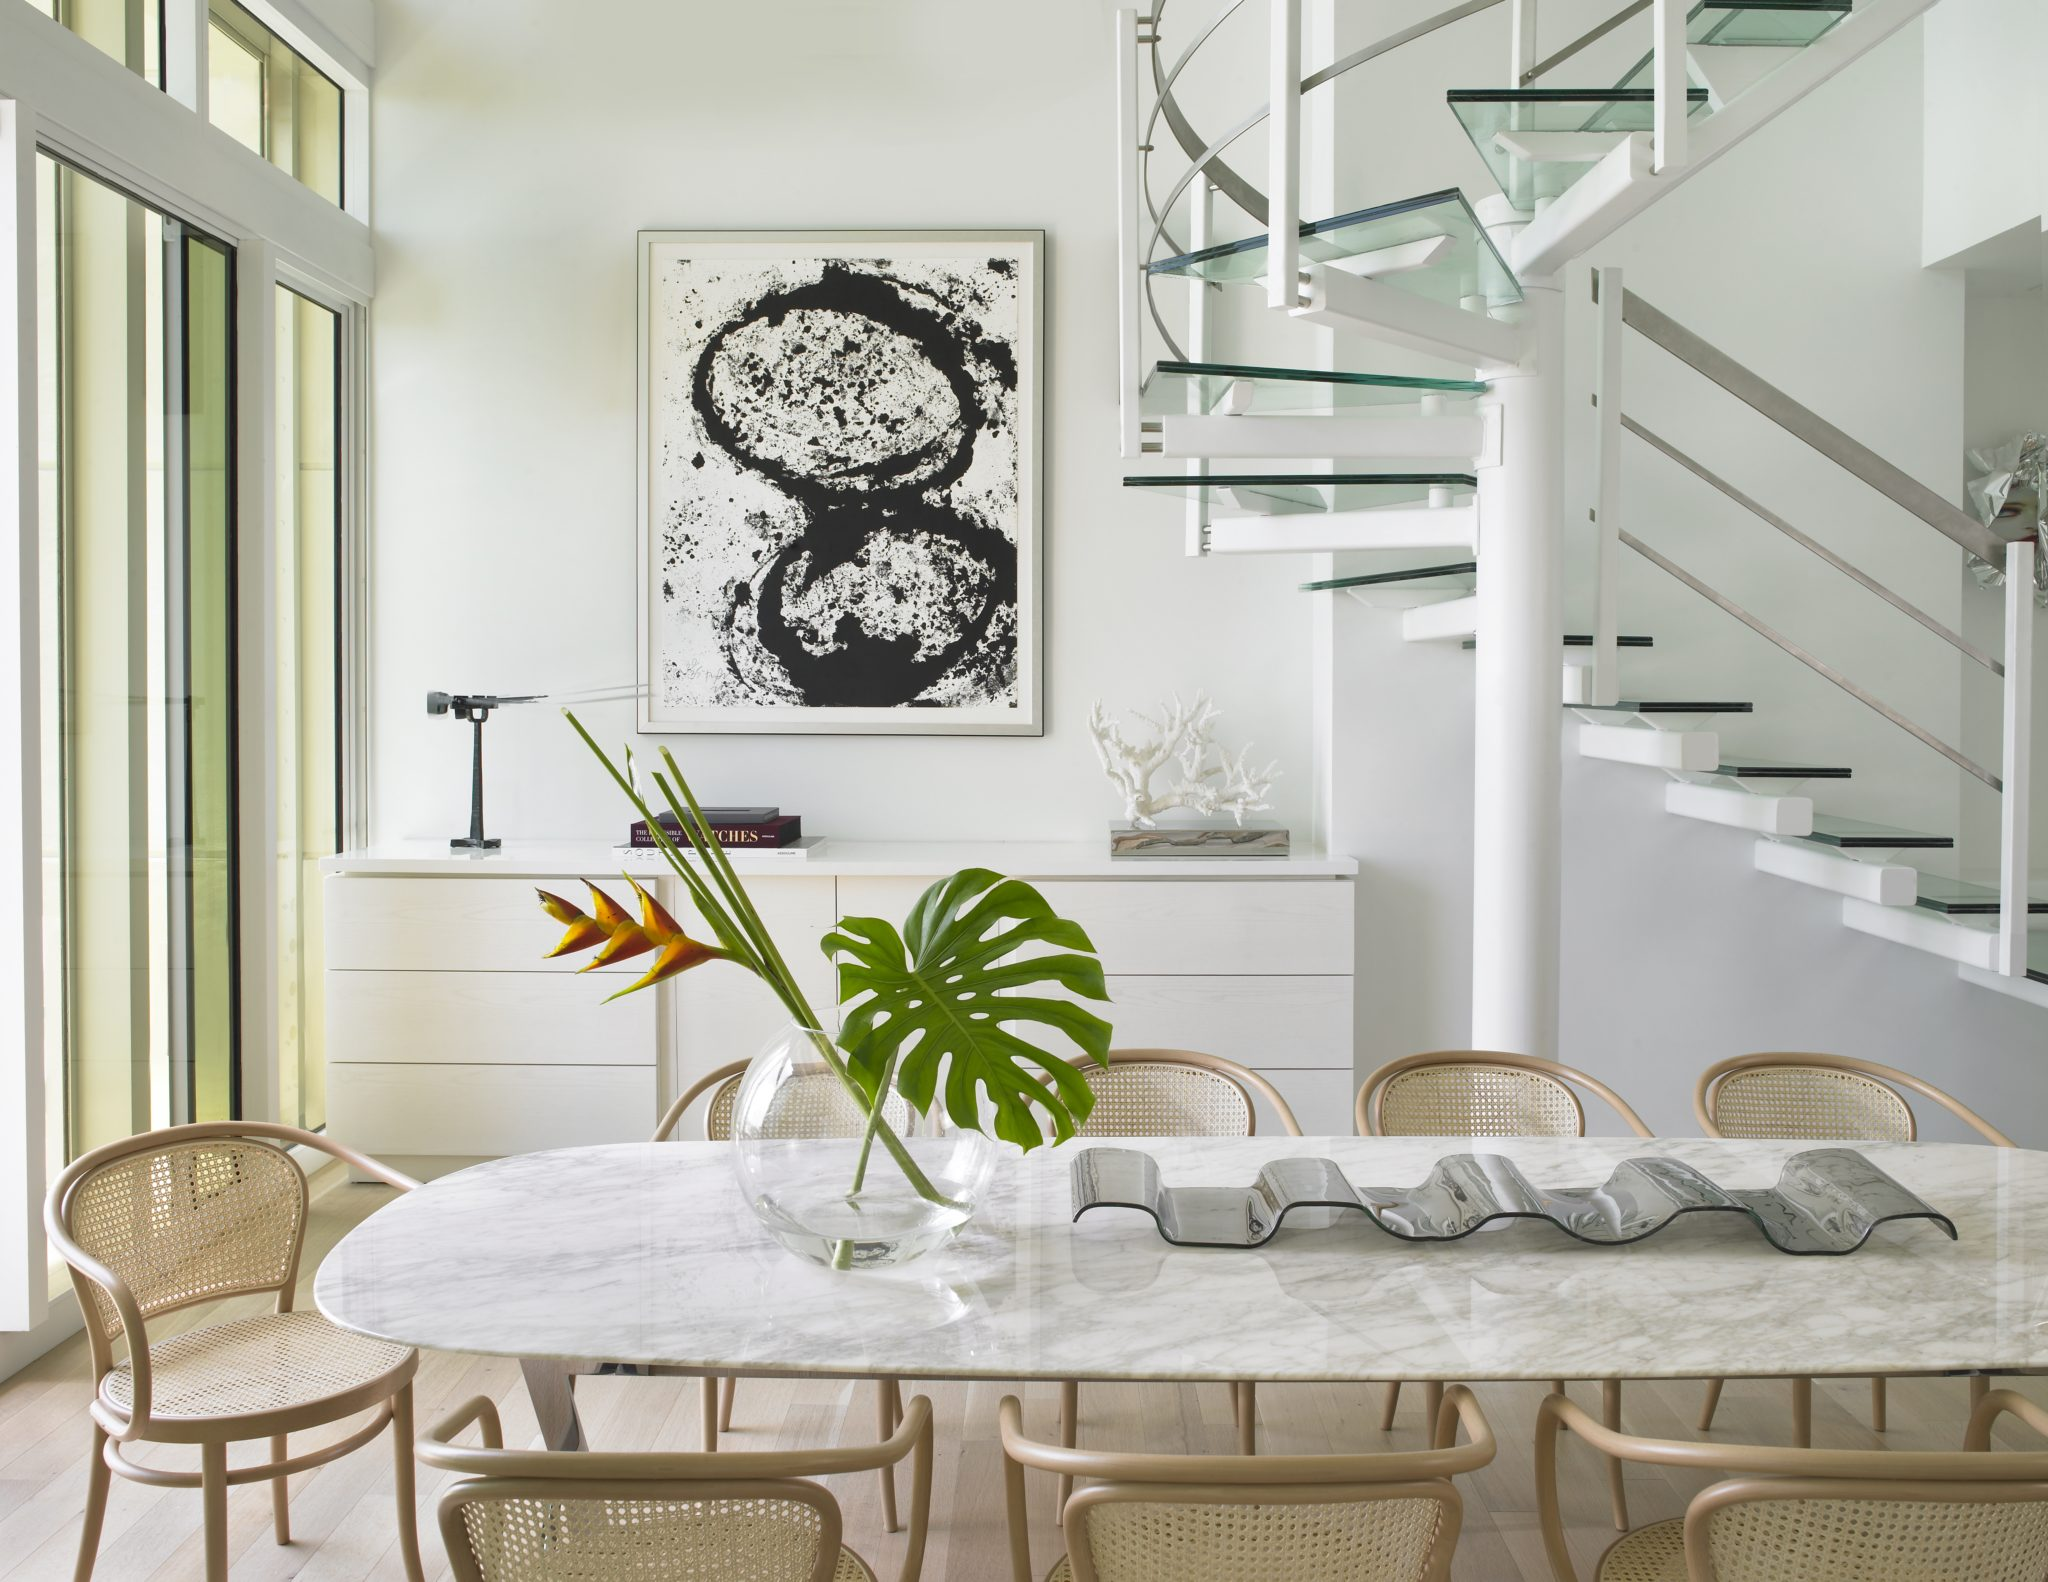 Basket-weave chairs surround the table in the casual dining area. Custom-designed cabinetry beneath the staircase has the same recessed edge as the walls to give the illusion that it is floating in the space. By Michael Wolk Design Associates